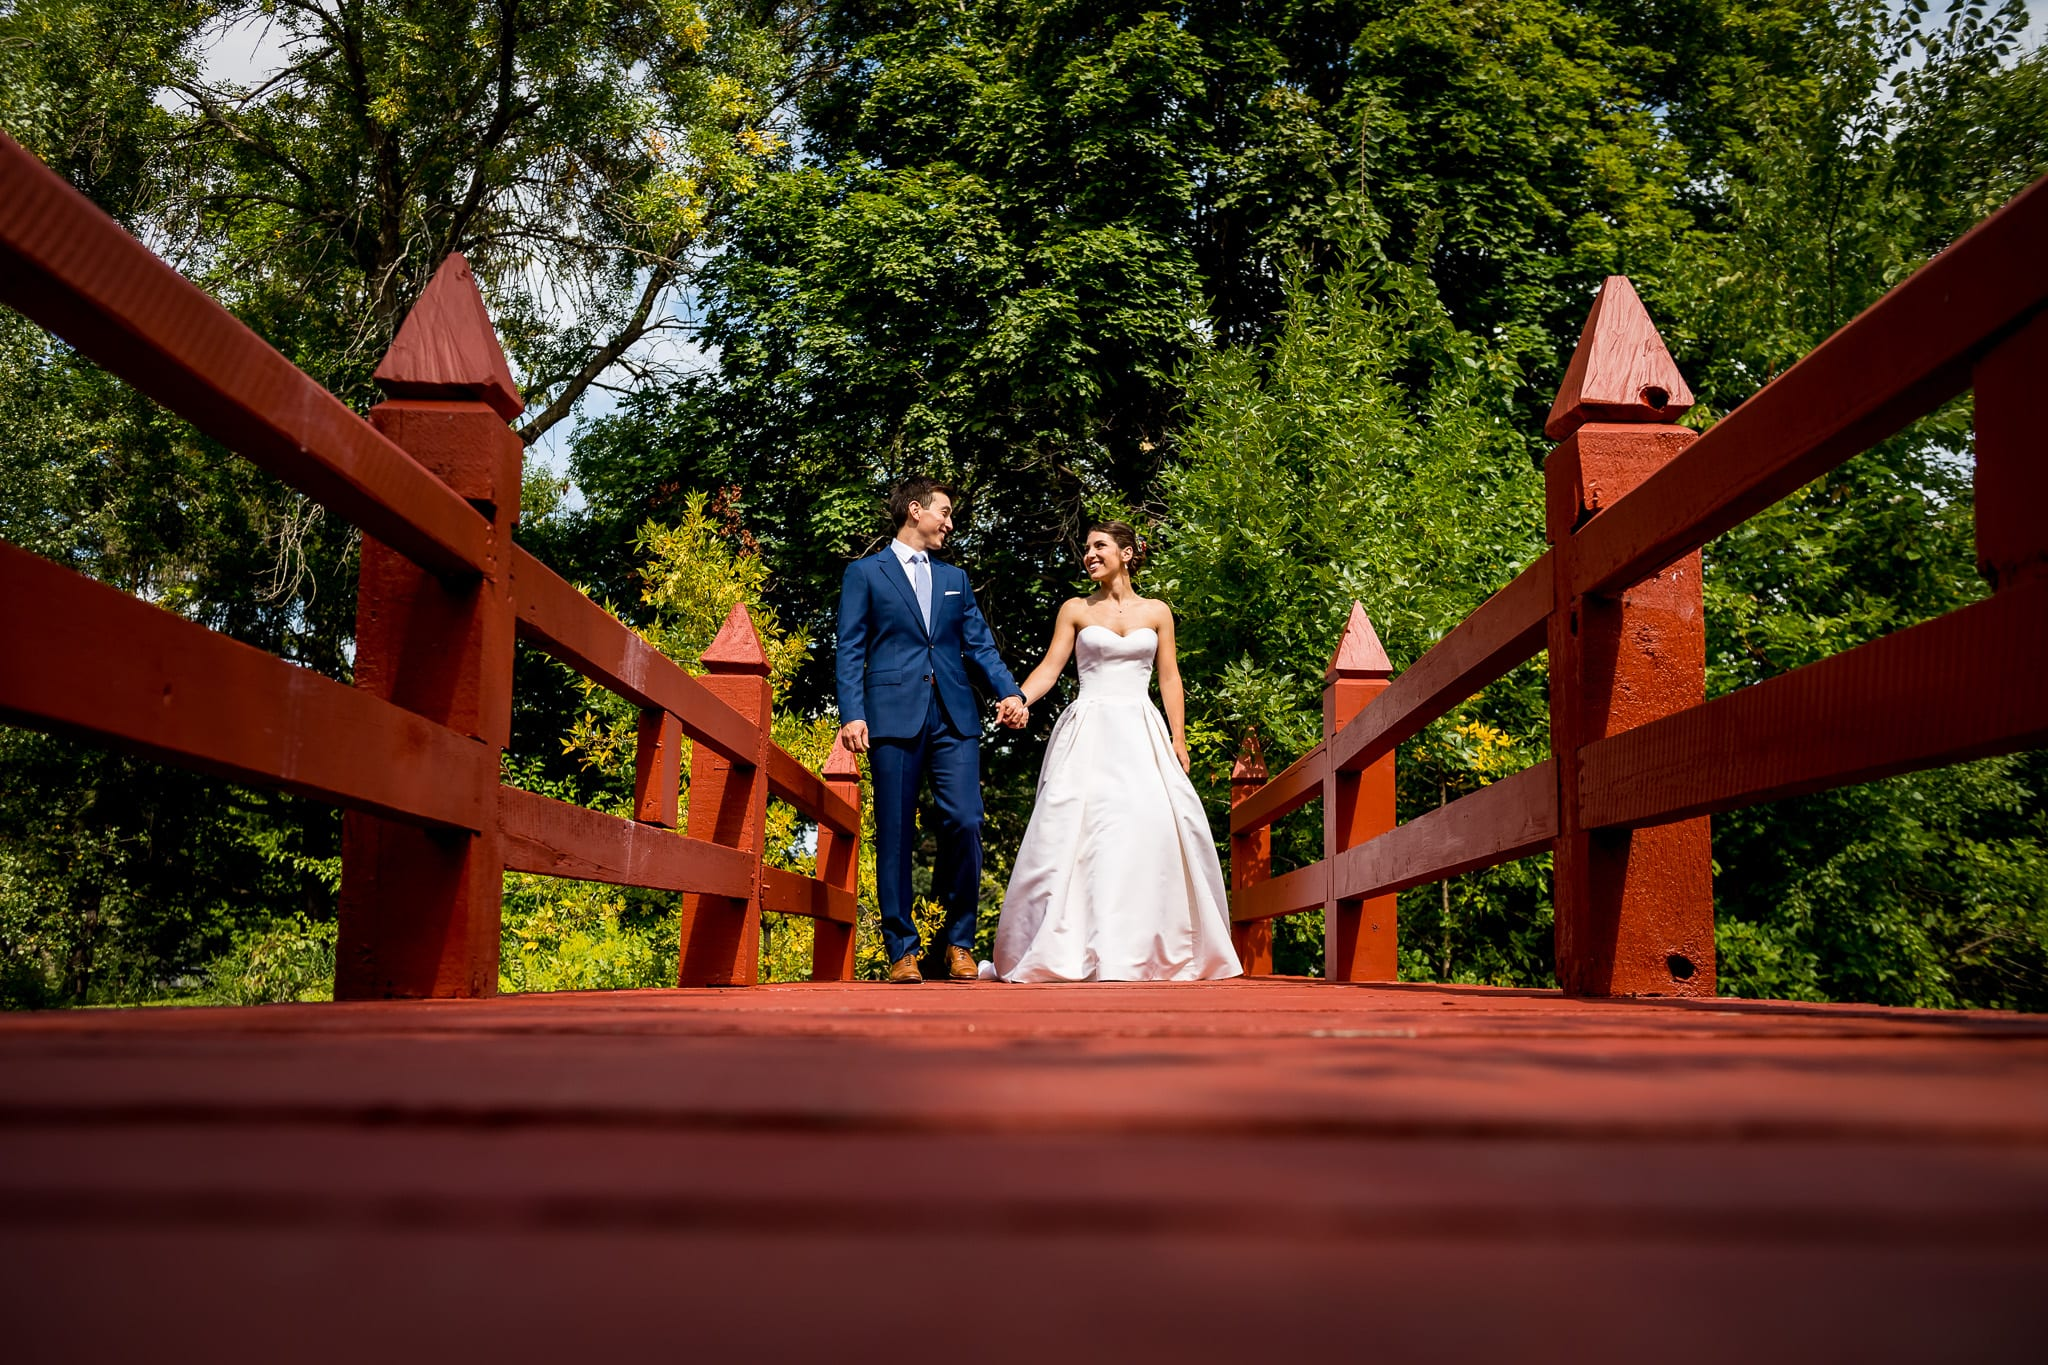 Bride and groom hold hands on a red wooden bridge